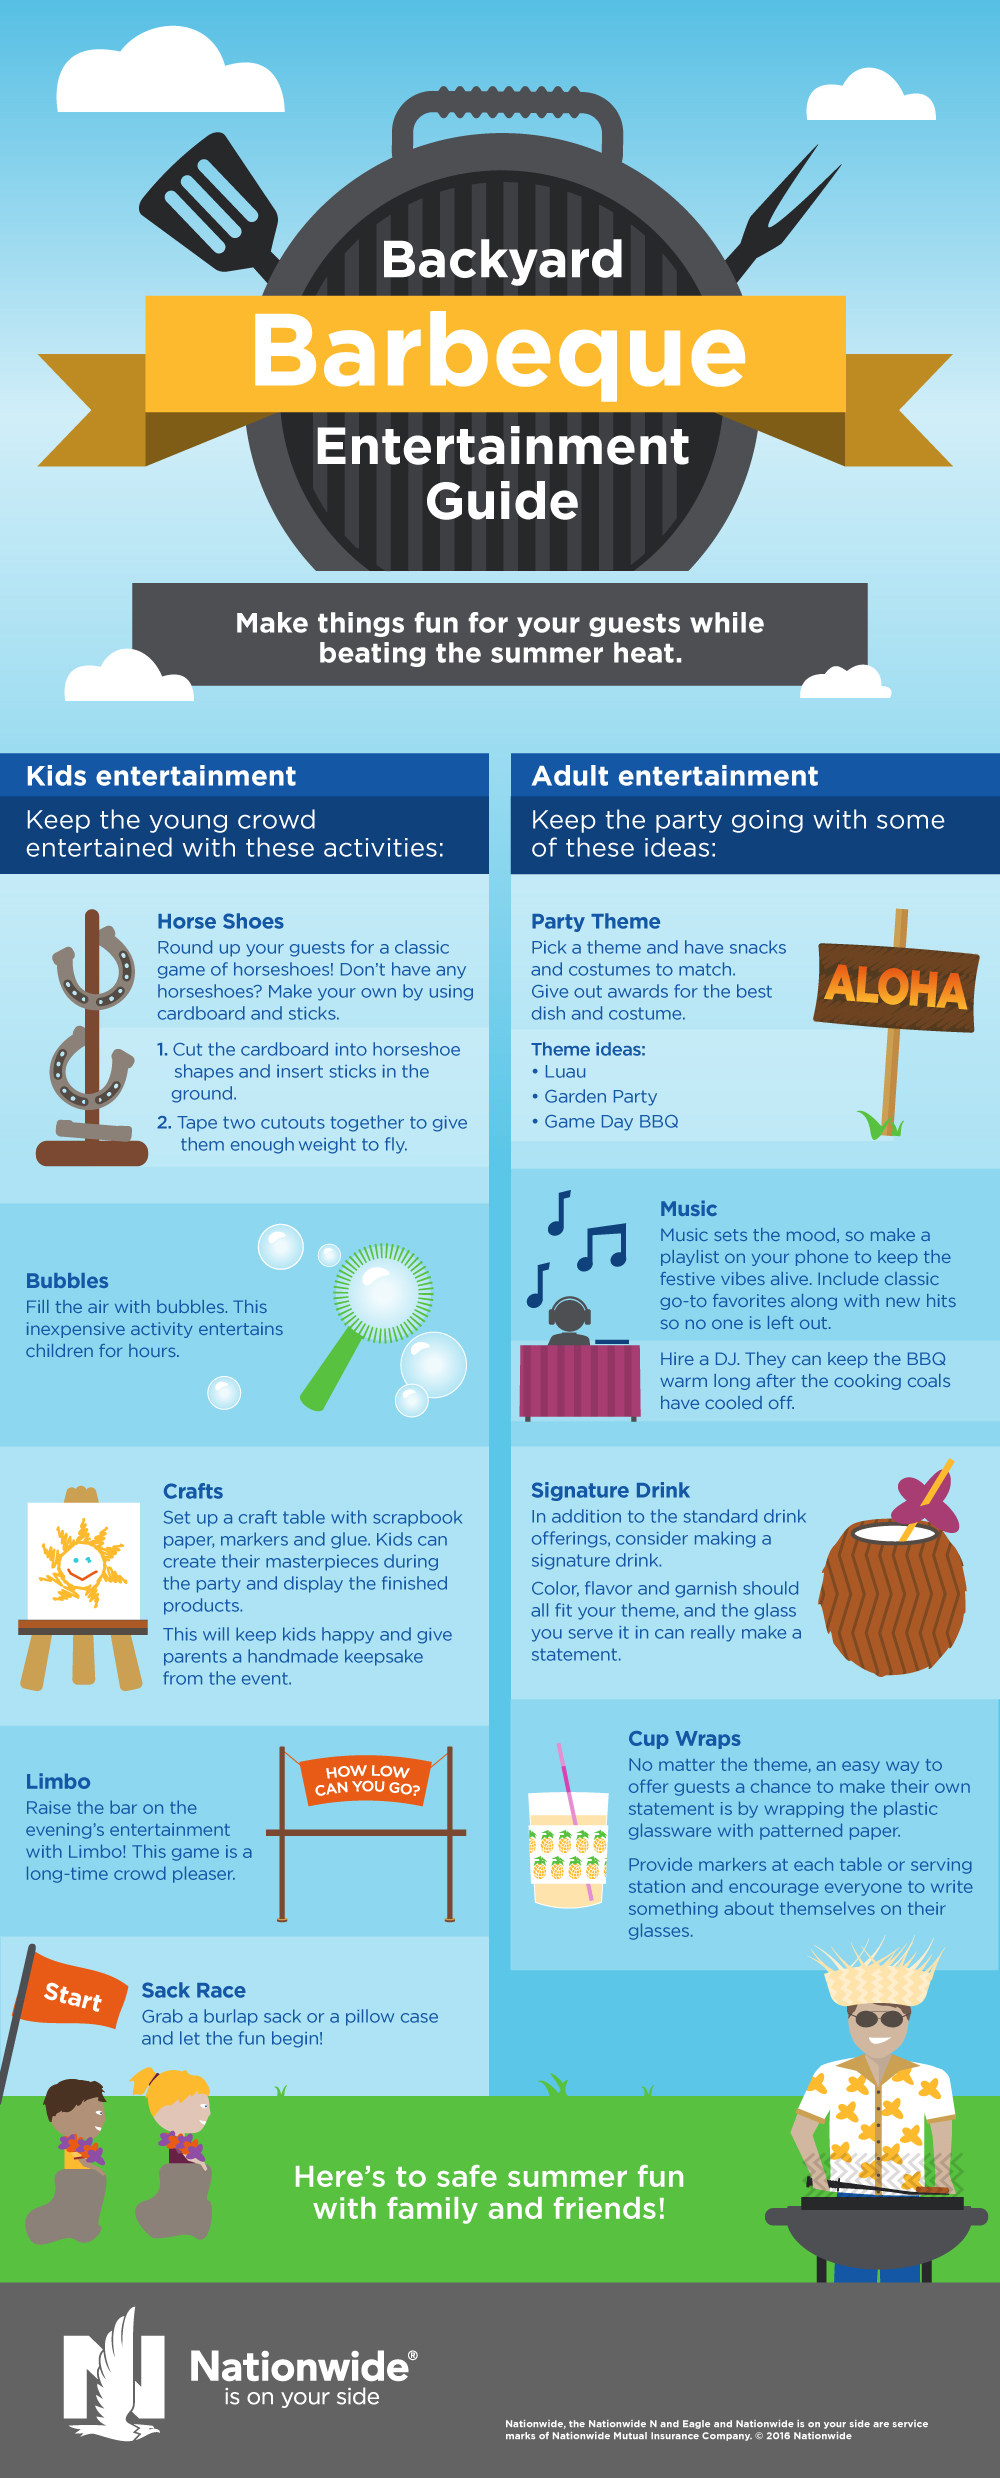 BBQ Party Ideas Infographic - Backyard bbq party ideas